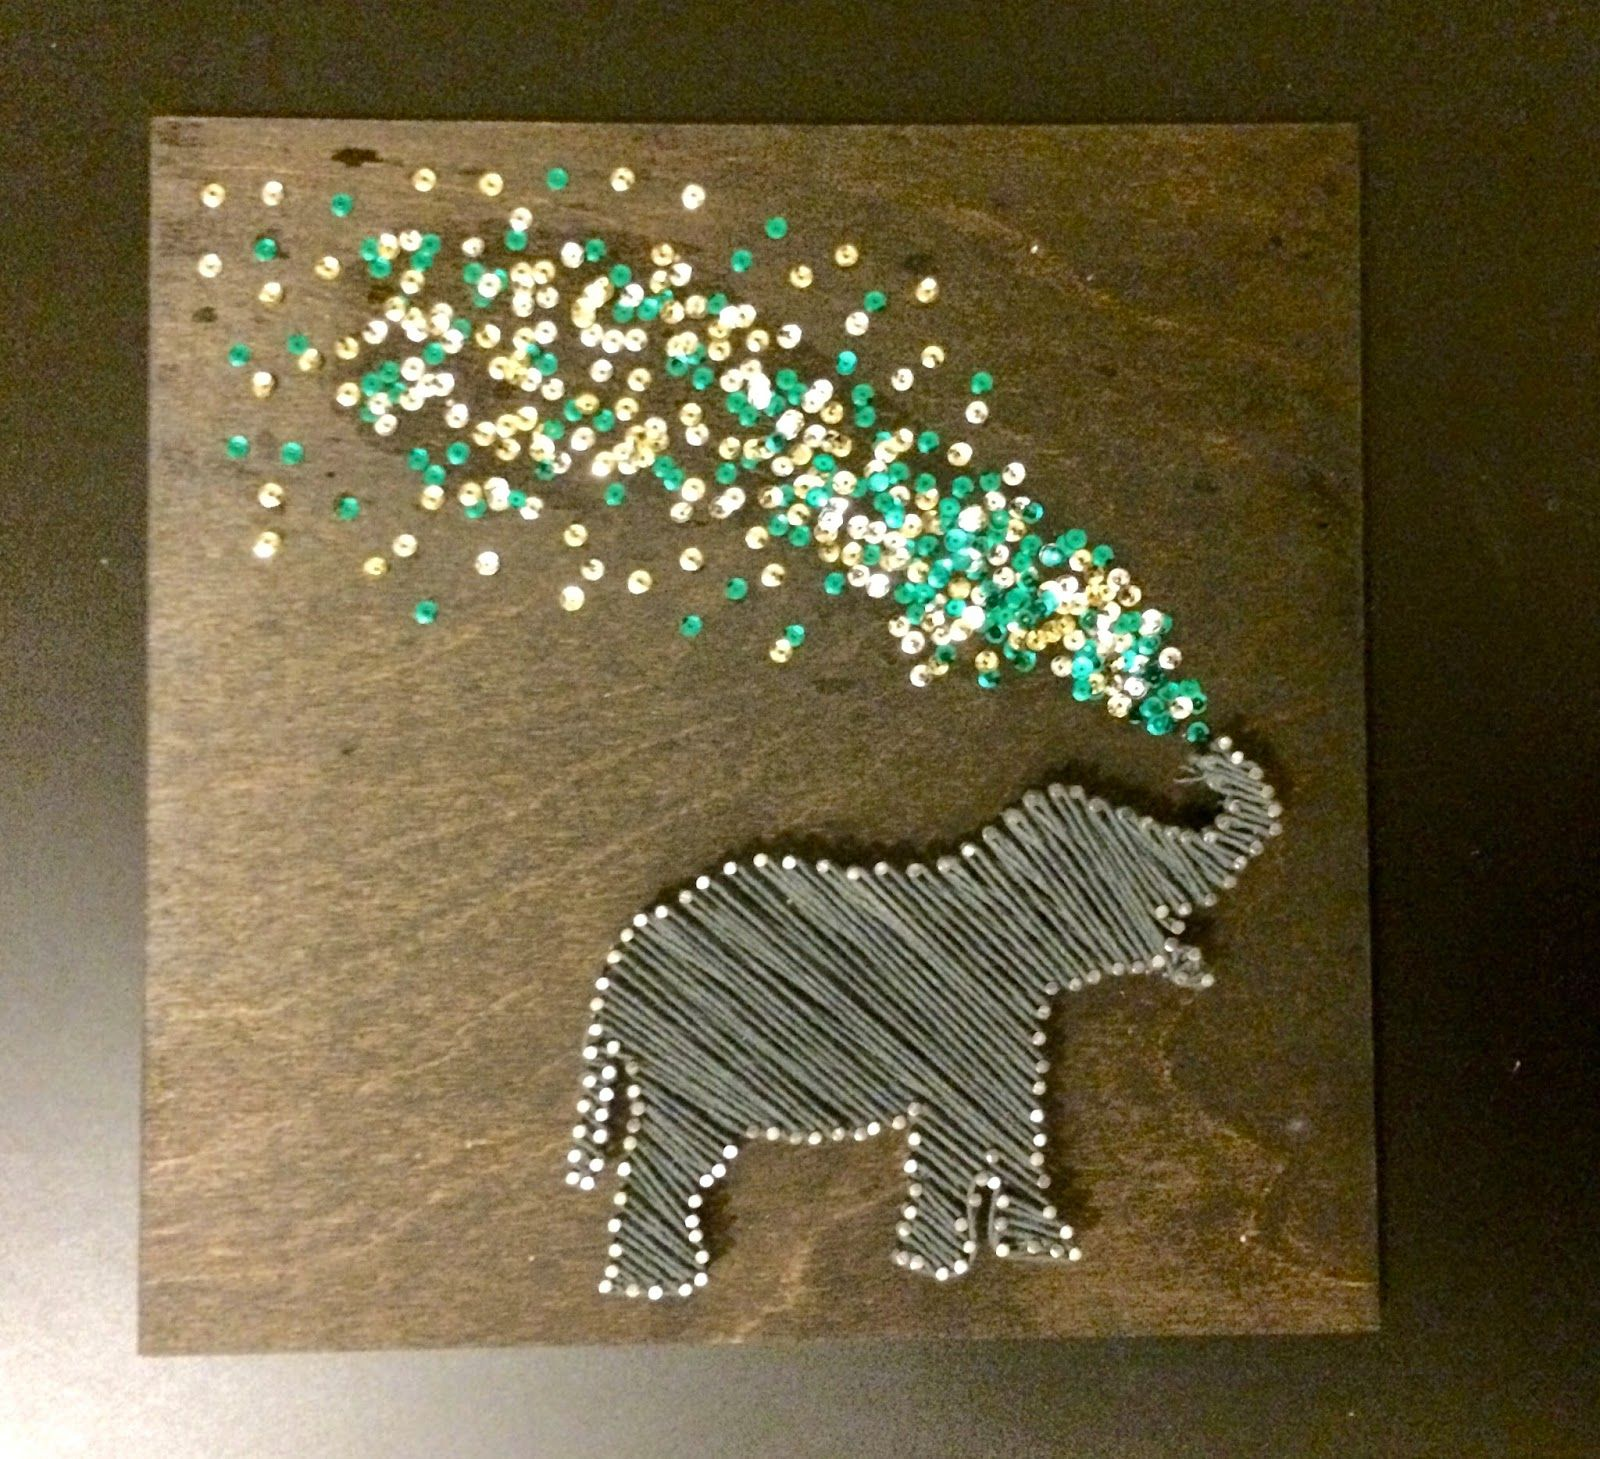 Tackling The String Art Elephant The First Installment In